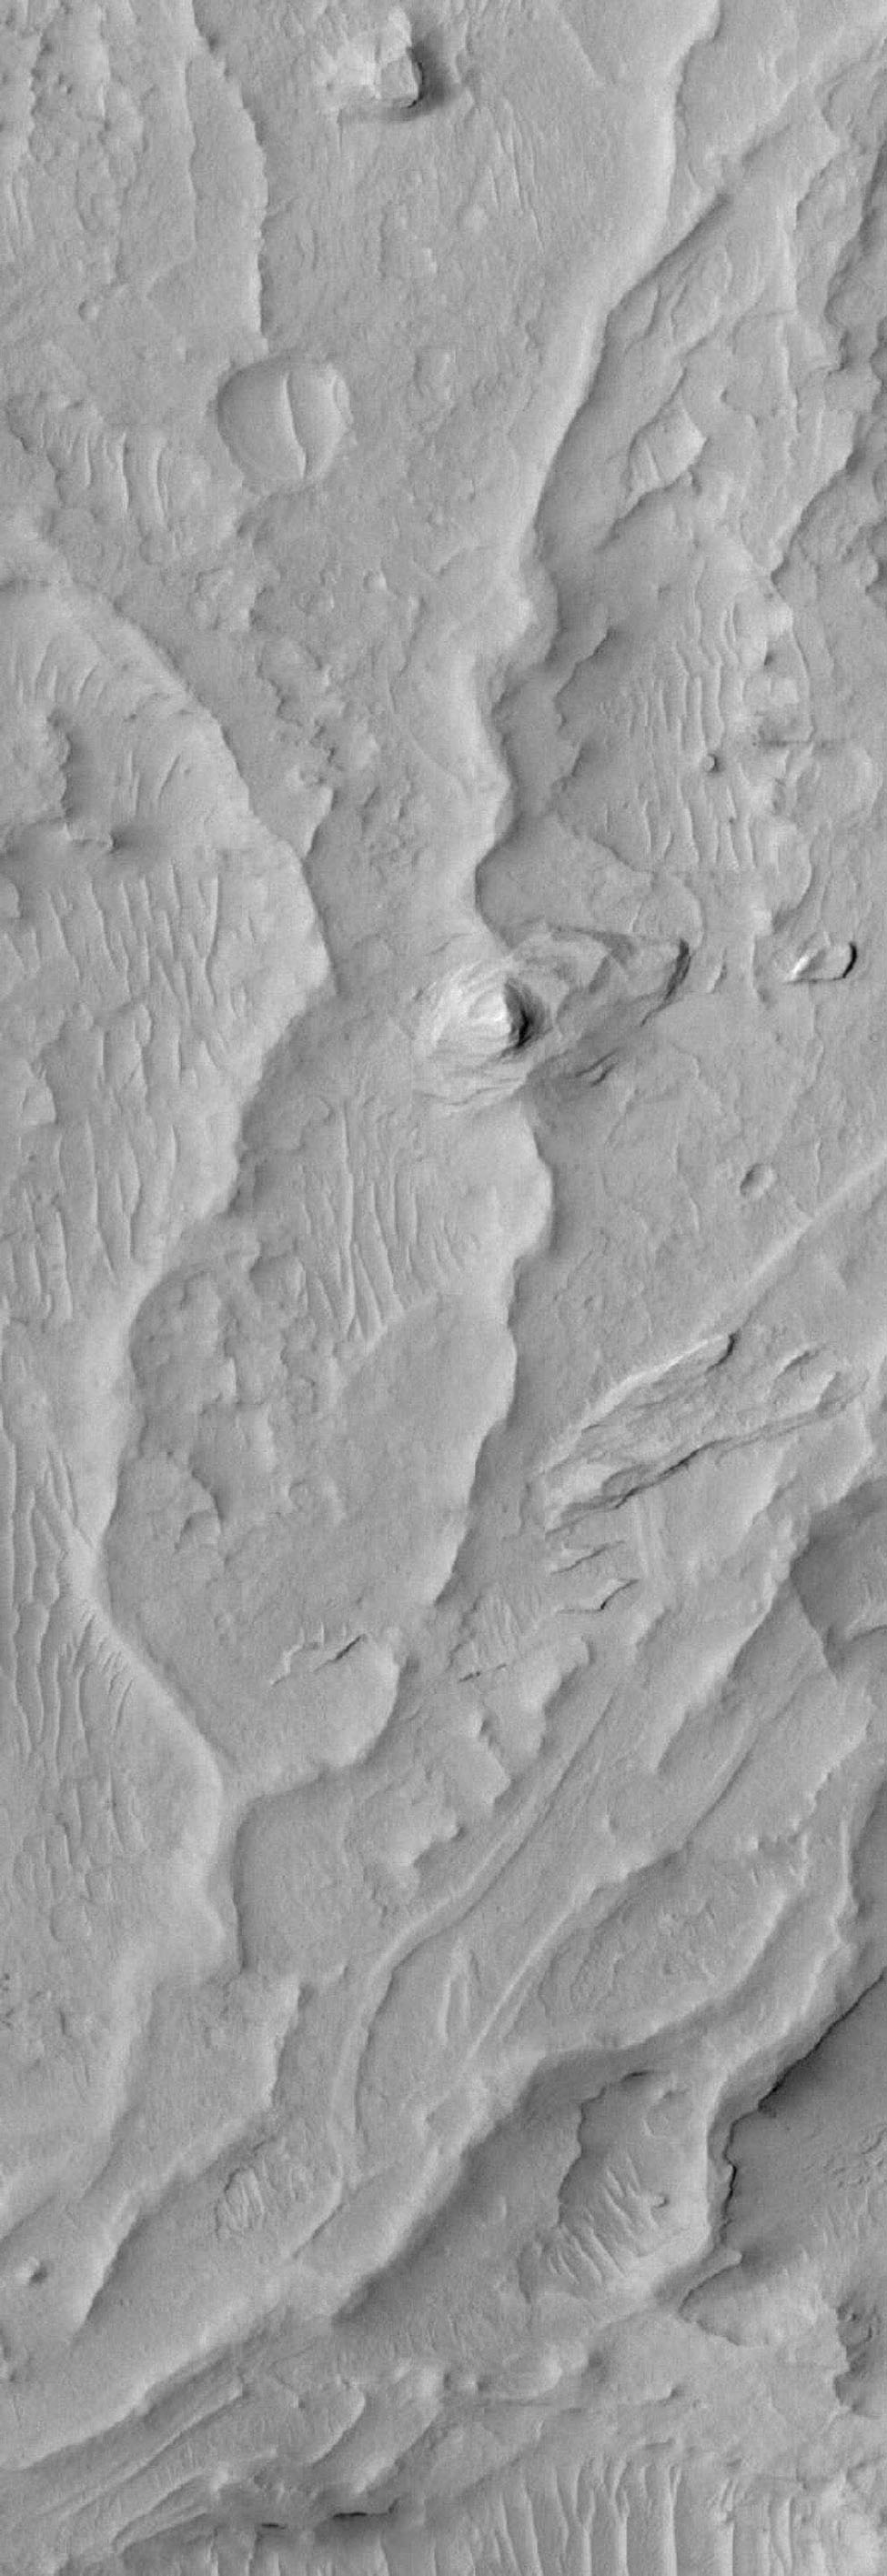 NASA's Mars Global Surveyor shows sinuous ridges and other landforms exposed by erosion in the Aeolis region of Mars.